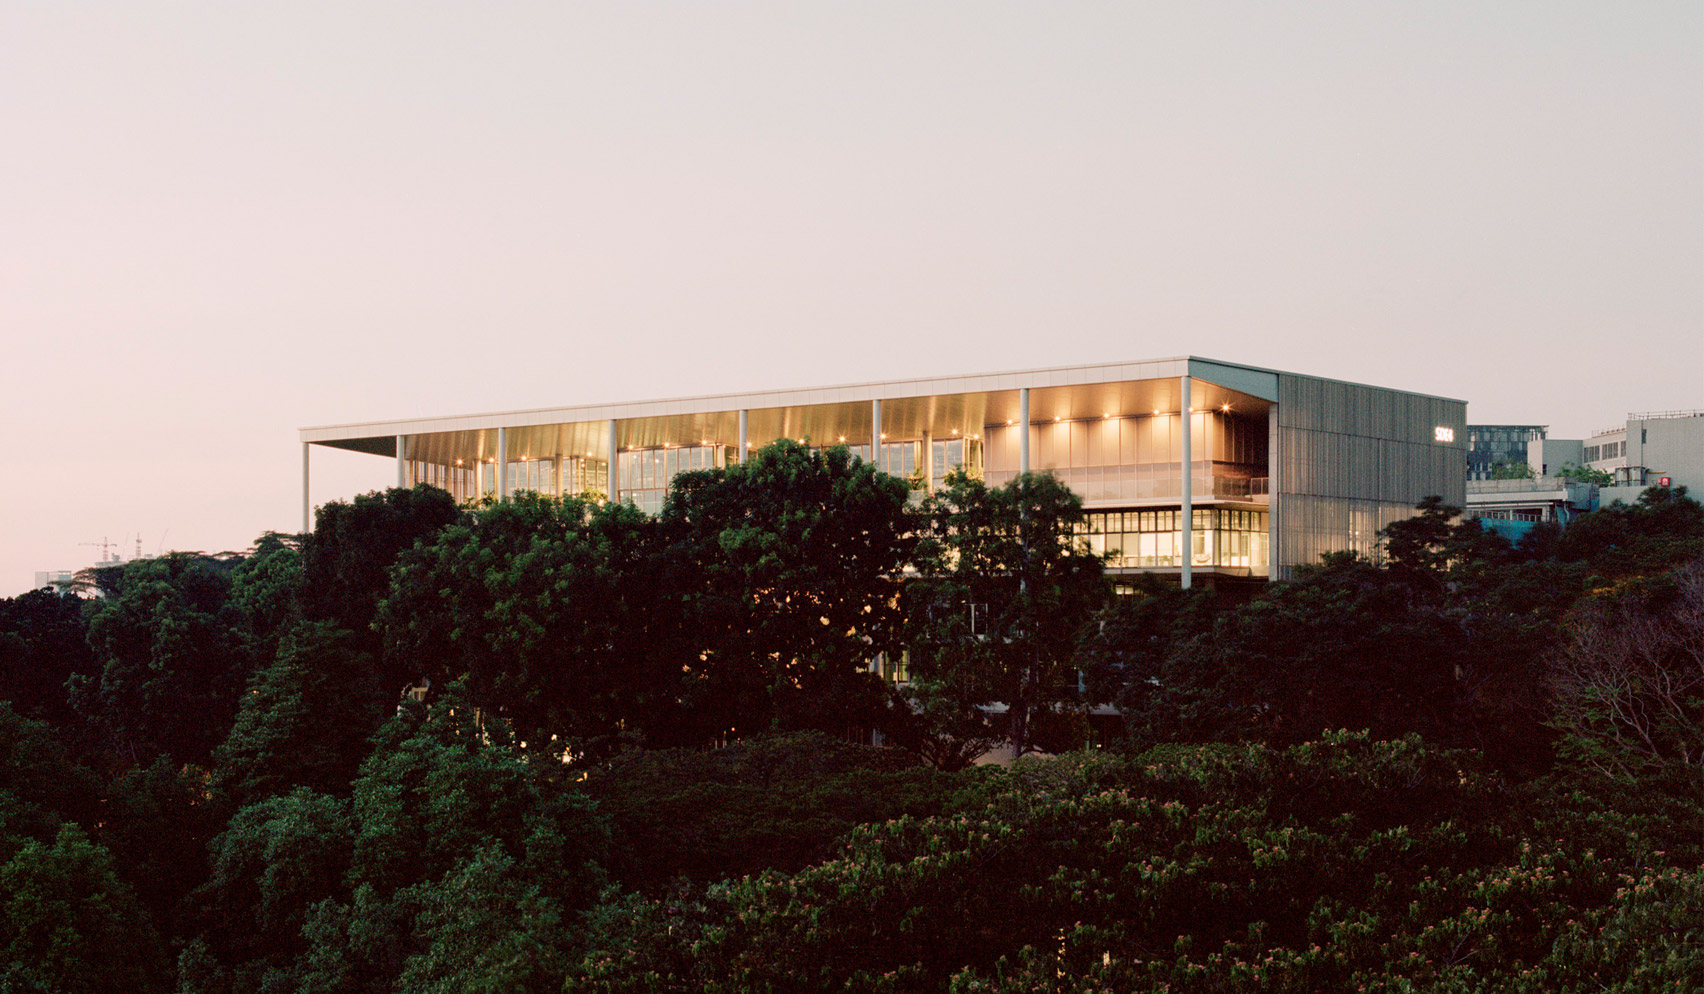 University of Singapore's SDE4 building is a sustainable design